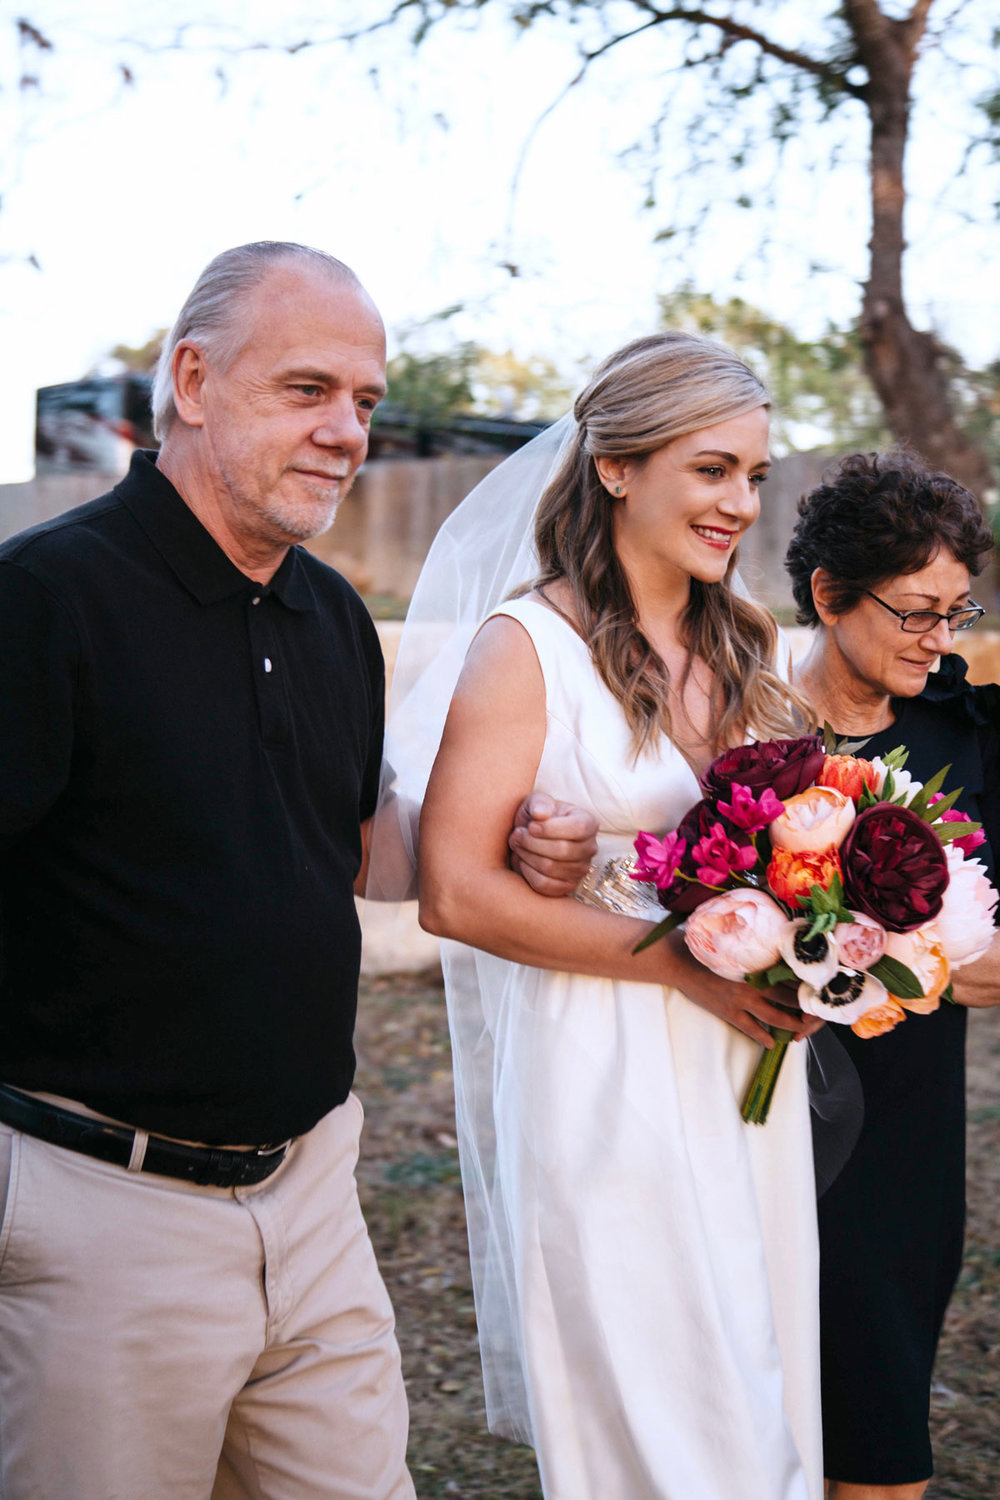 PaperRoseCo_Wedding_Erica_1.jpg